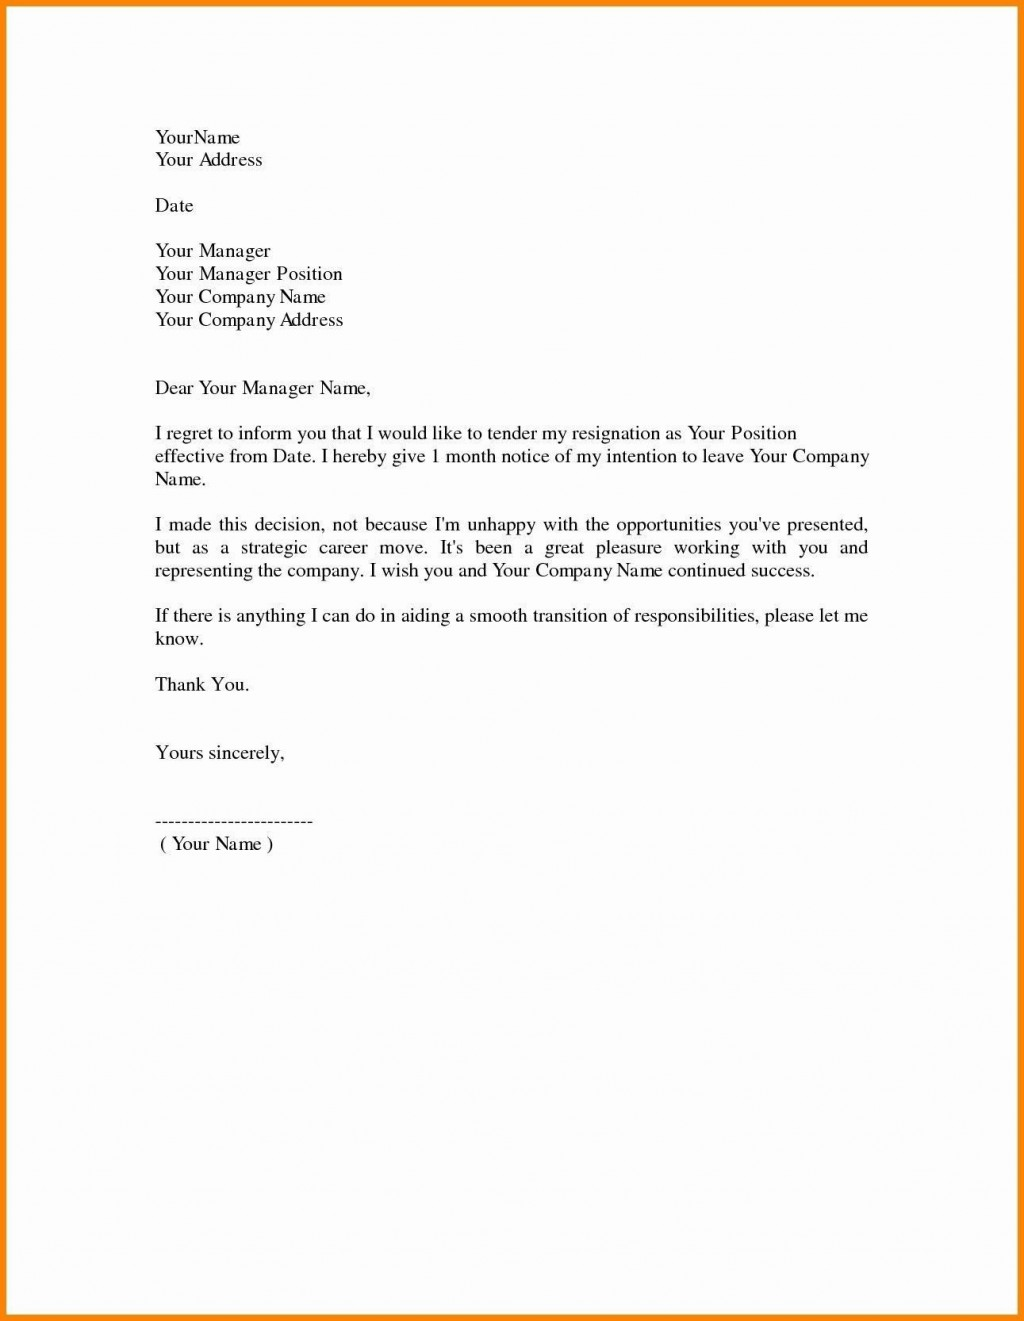 000 Remarkable Template For Letter Of Resignation Idea  Free With Notice Period WordLarge